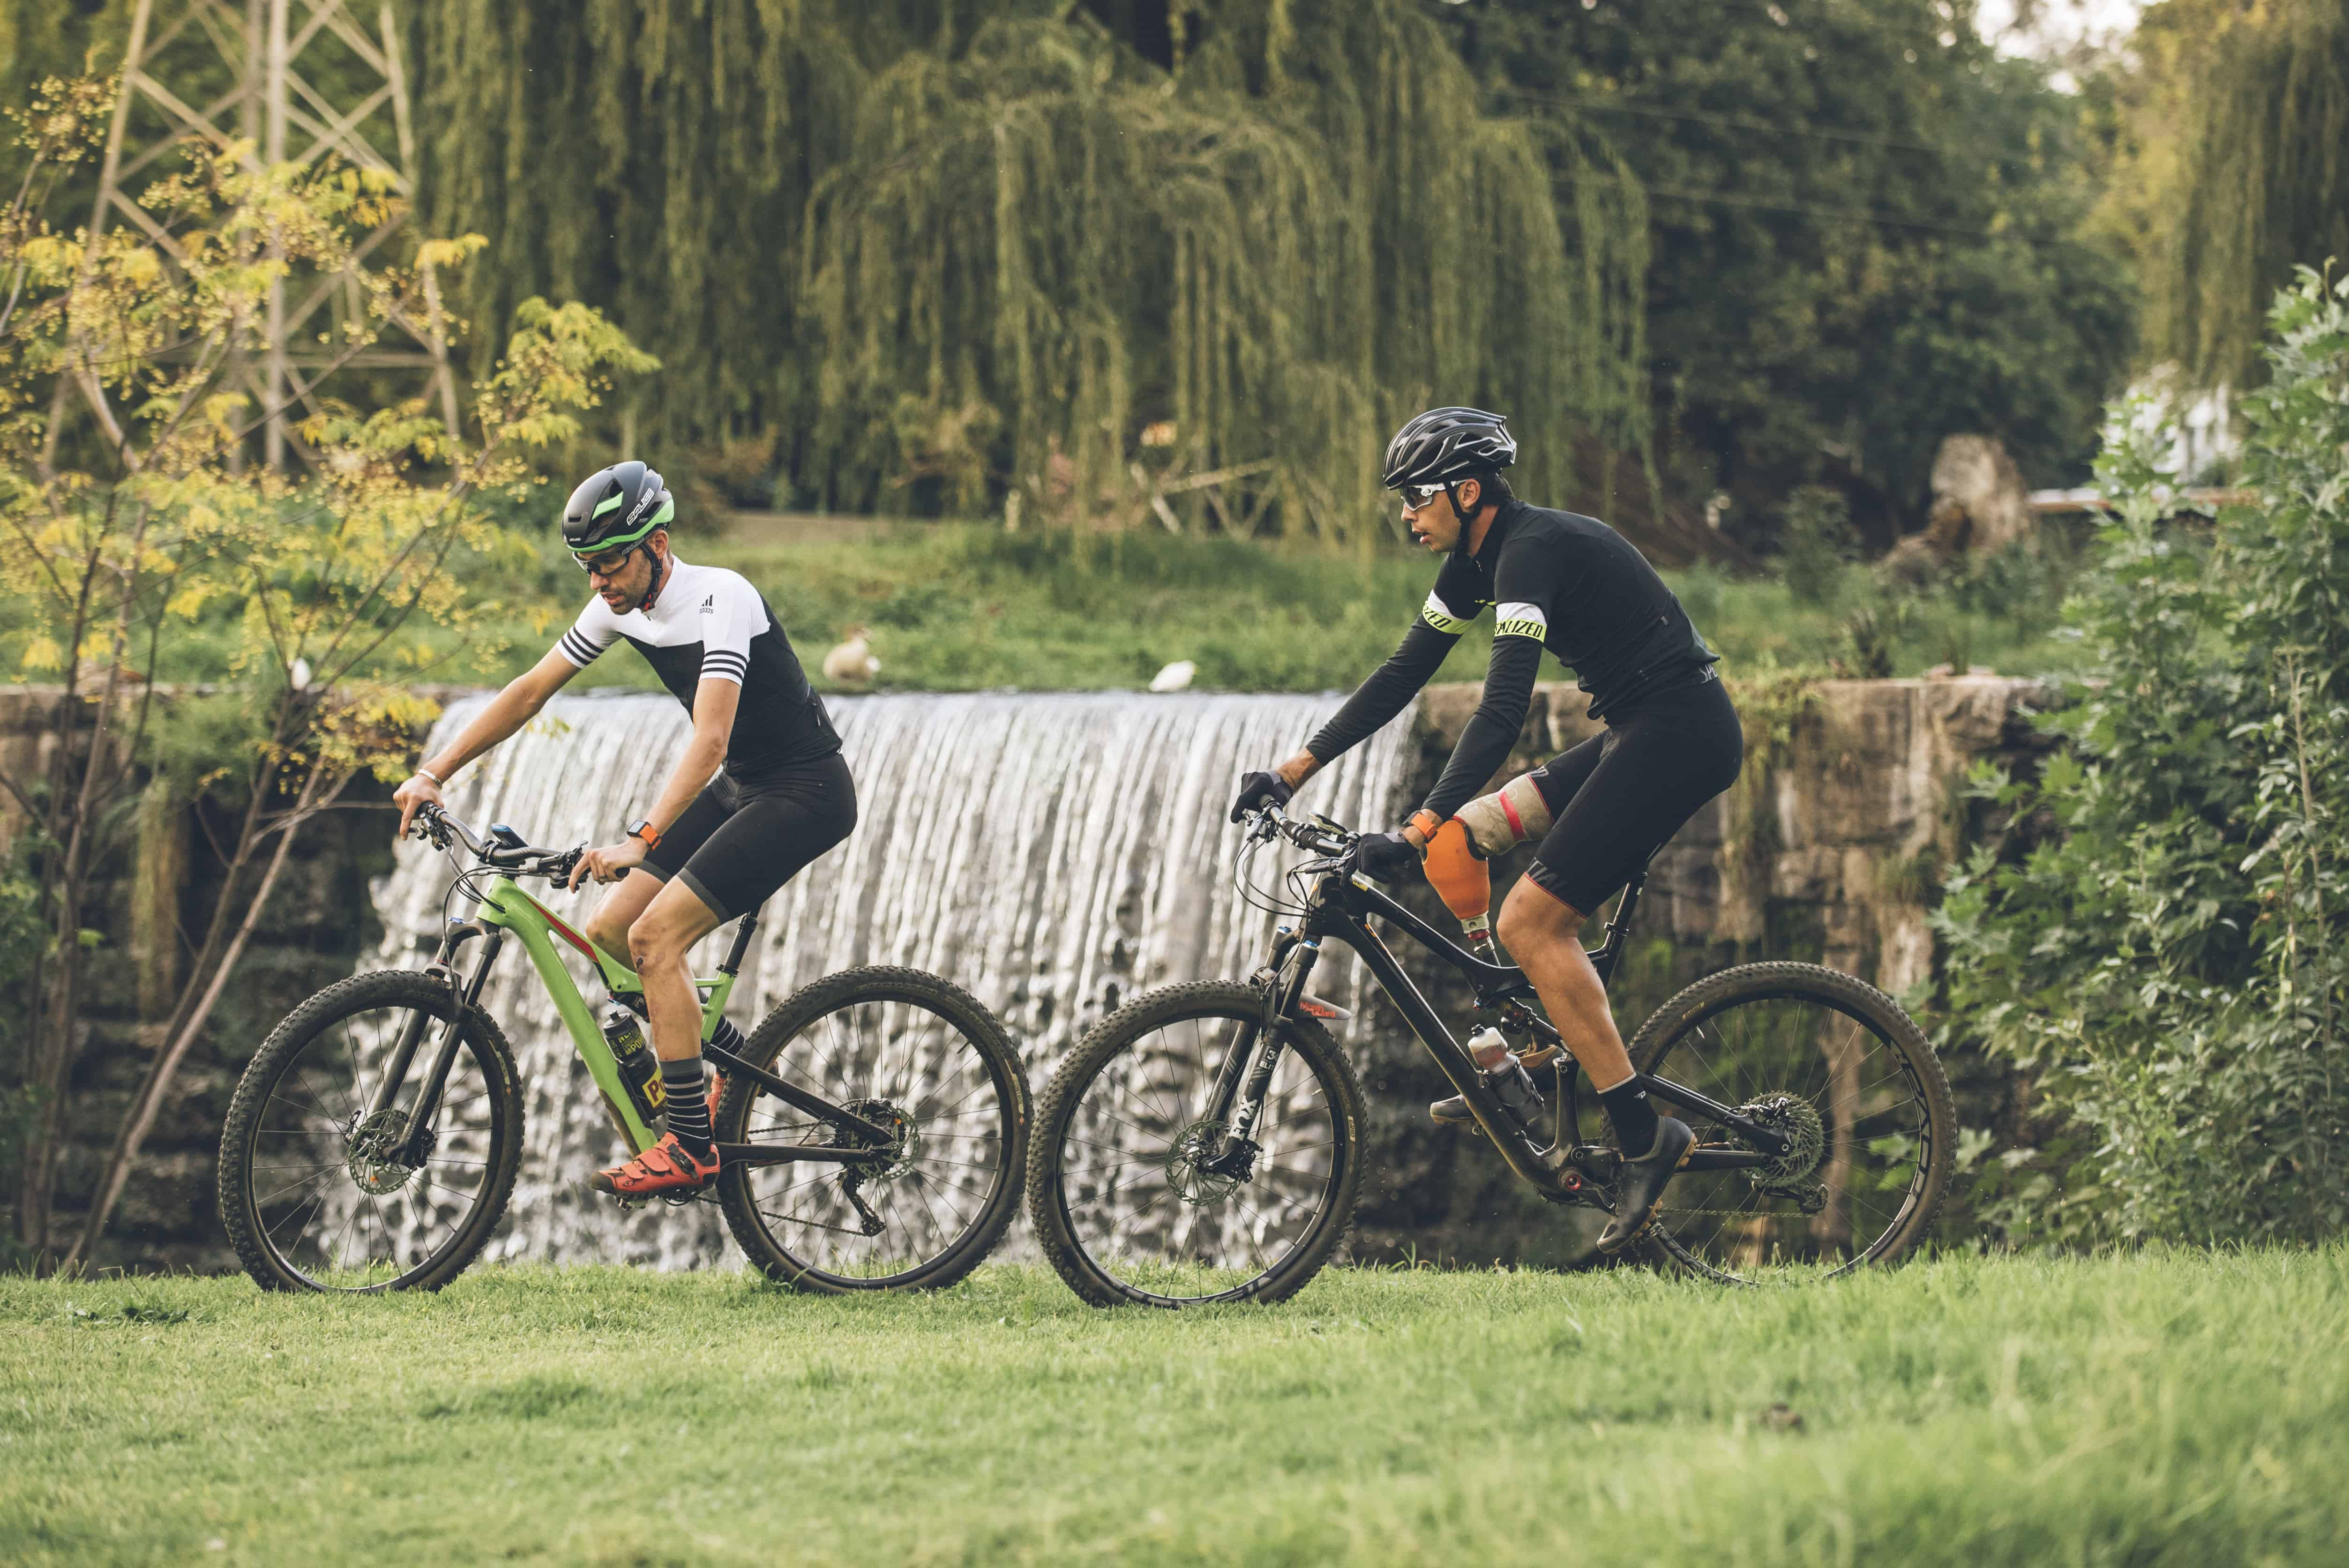 wow-rides-die-spruit-bicycling-magazine-dna-photograpers-5